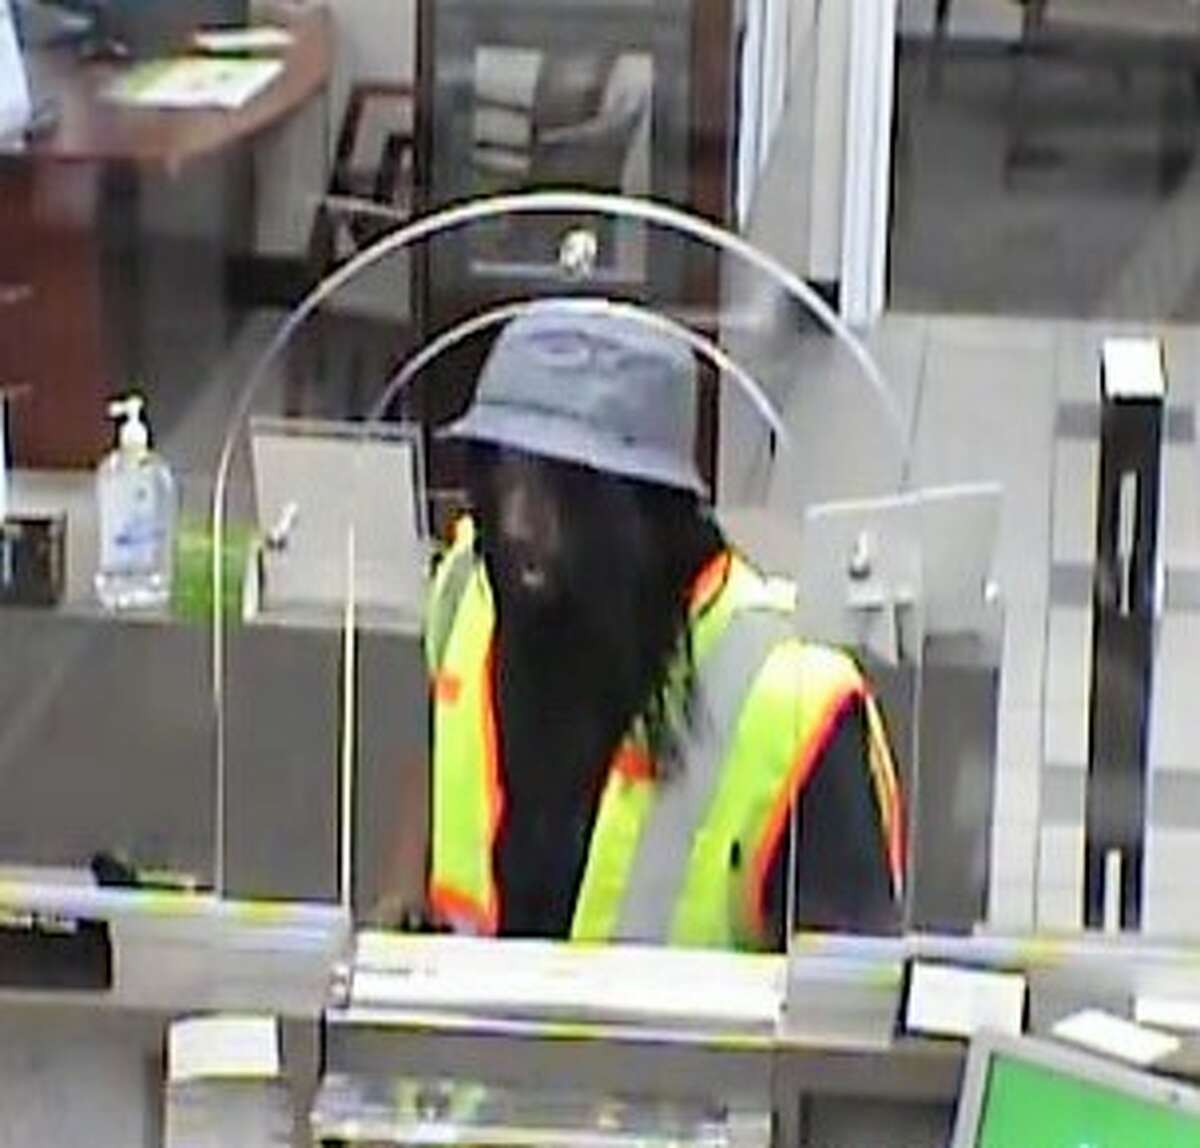 Surveillance photo shows a suspect during an armed bank robbery at the Pearland Regions Bank on McHard Road on May 27, 2016. FBI and Pearland police are offering a reward for tips leading to the identification of three suspects.